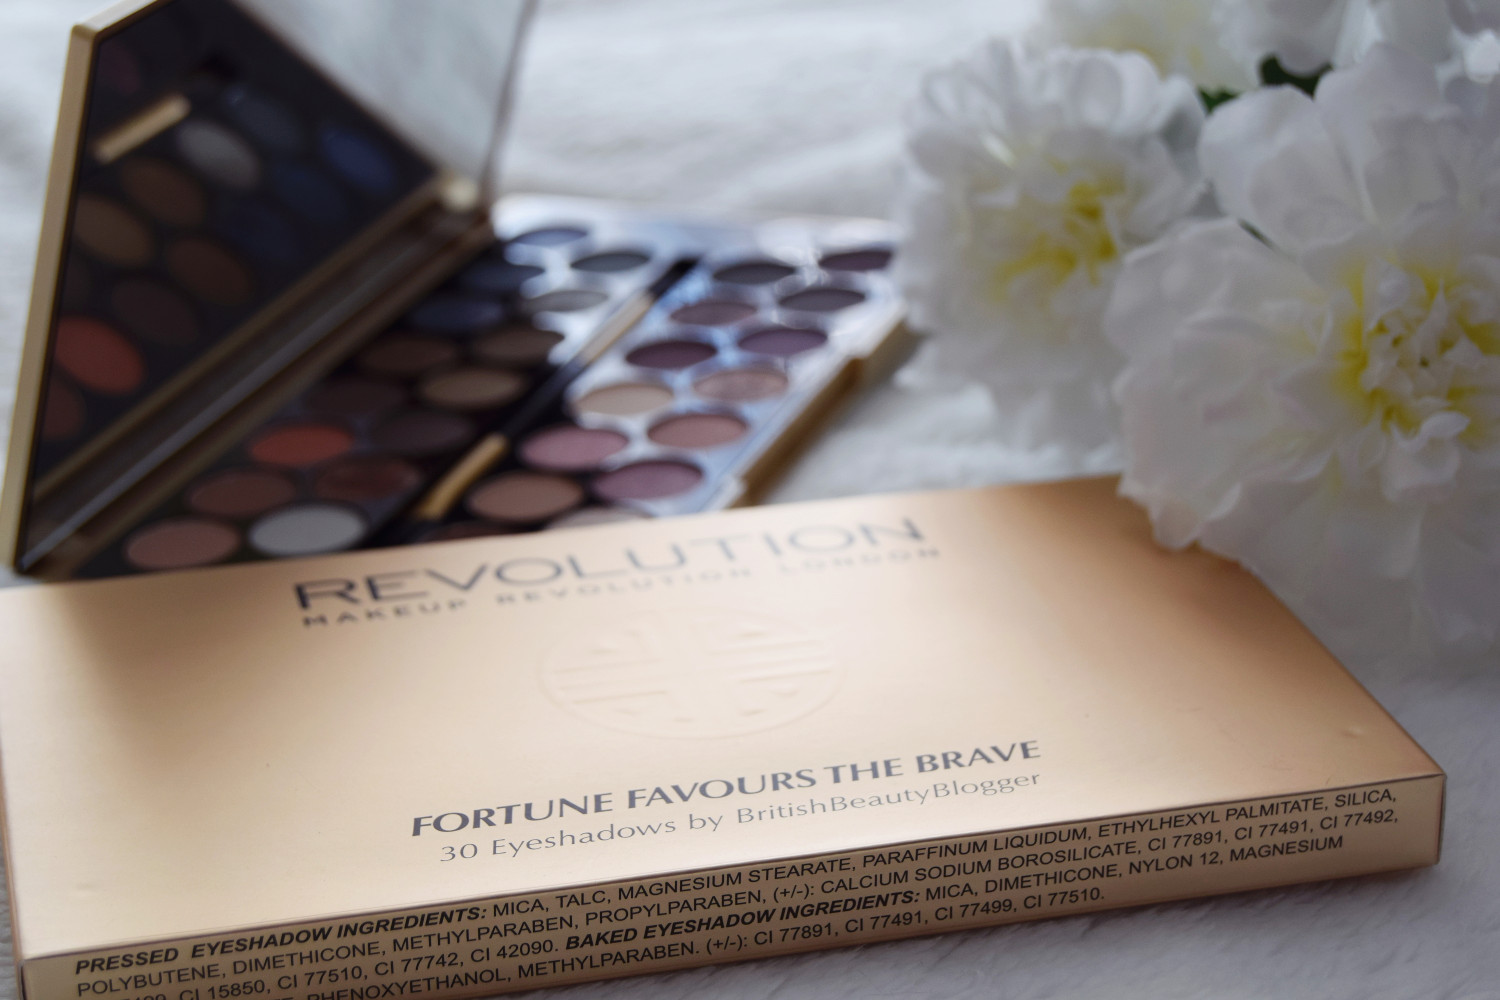 Makeup_Revolution_London_haul_review_Fortune_favours_the_brave_eyeshadows_Zalabell_3